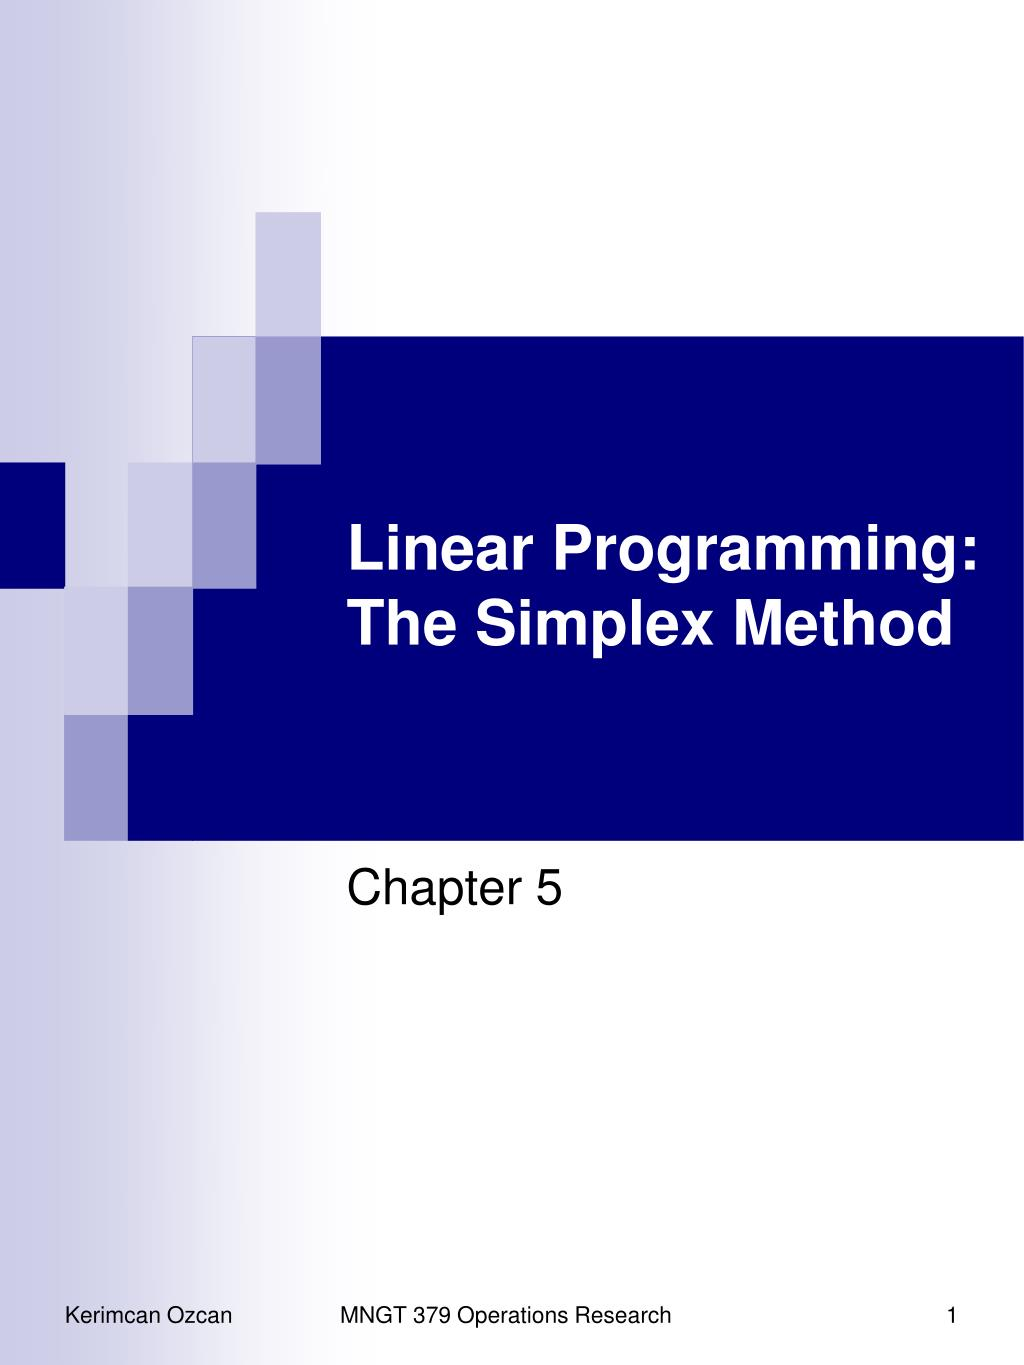 PPT - Linear Programming: The Simplex Method PowerPoint